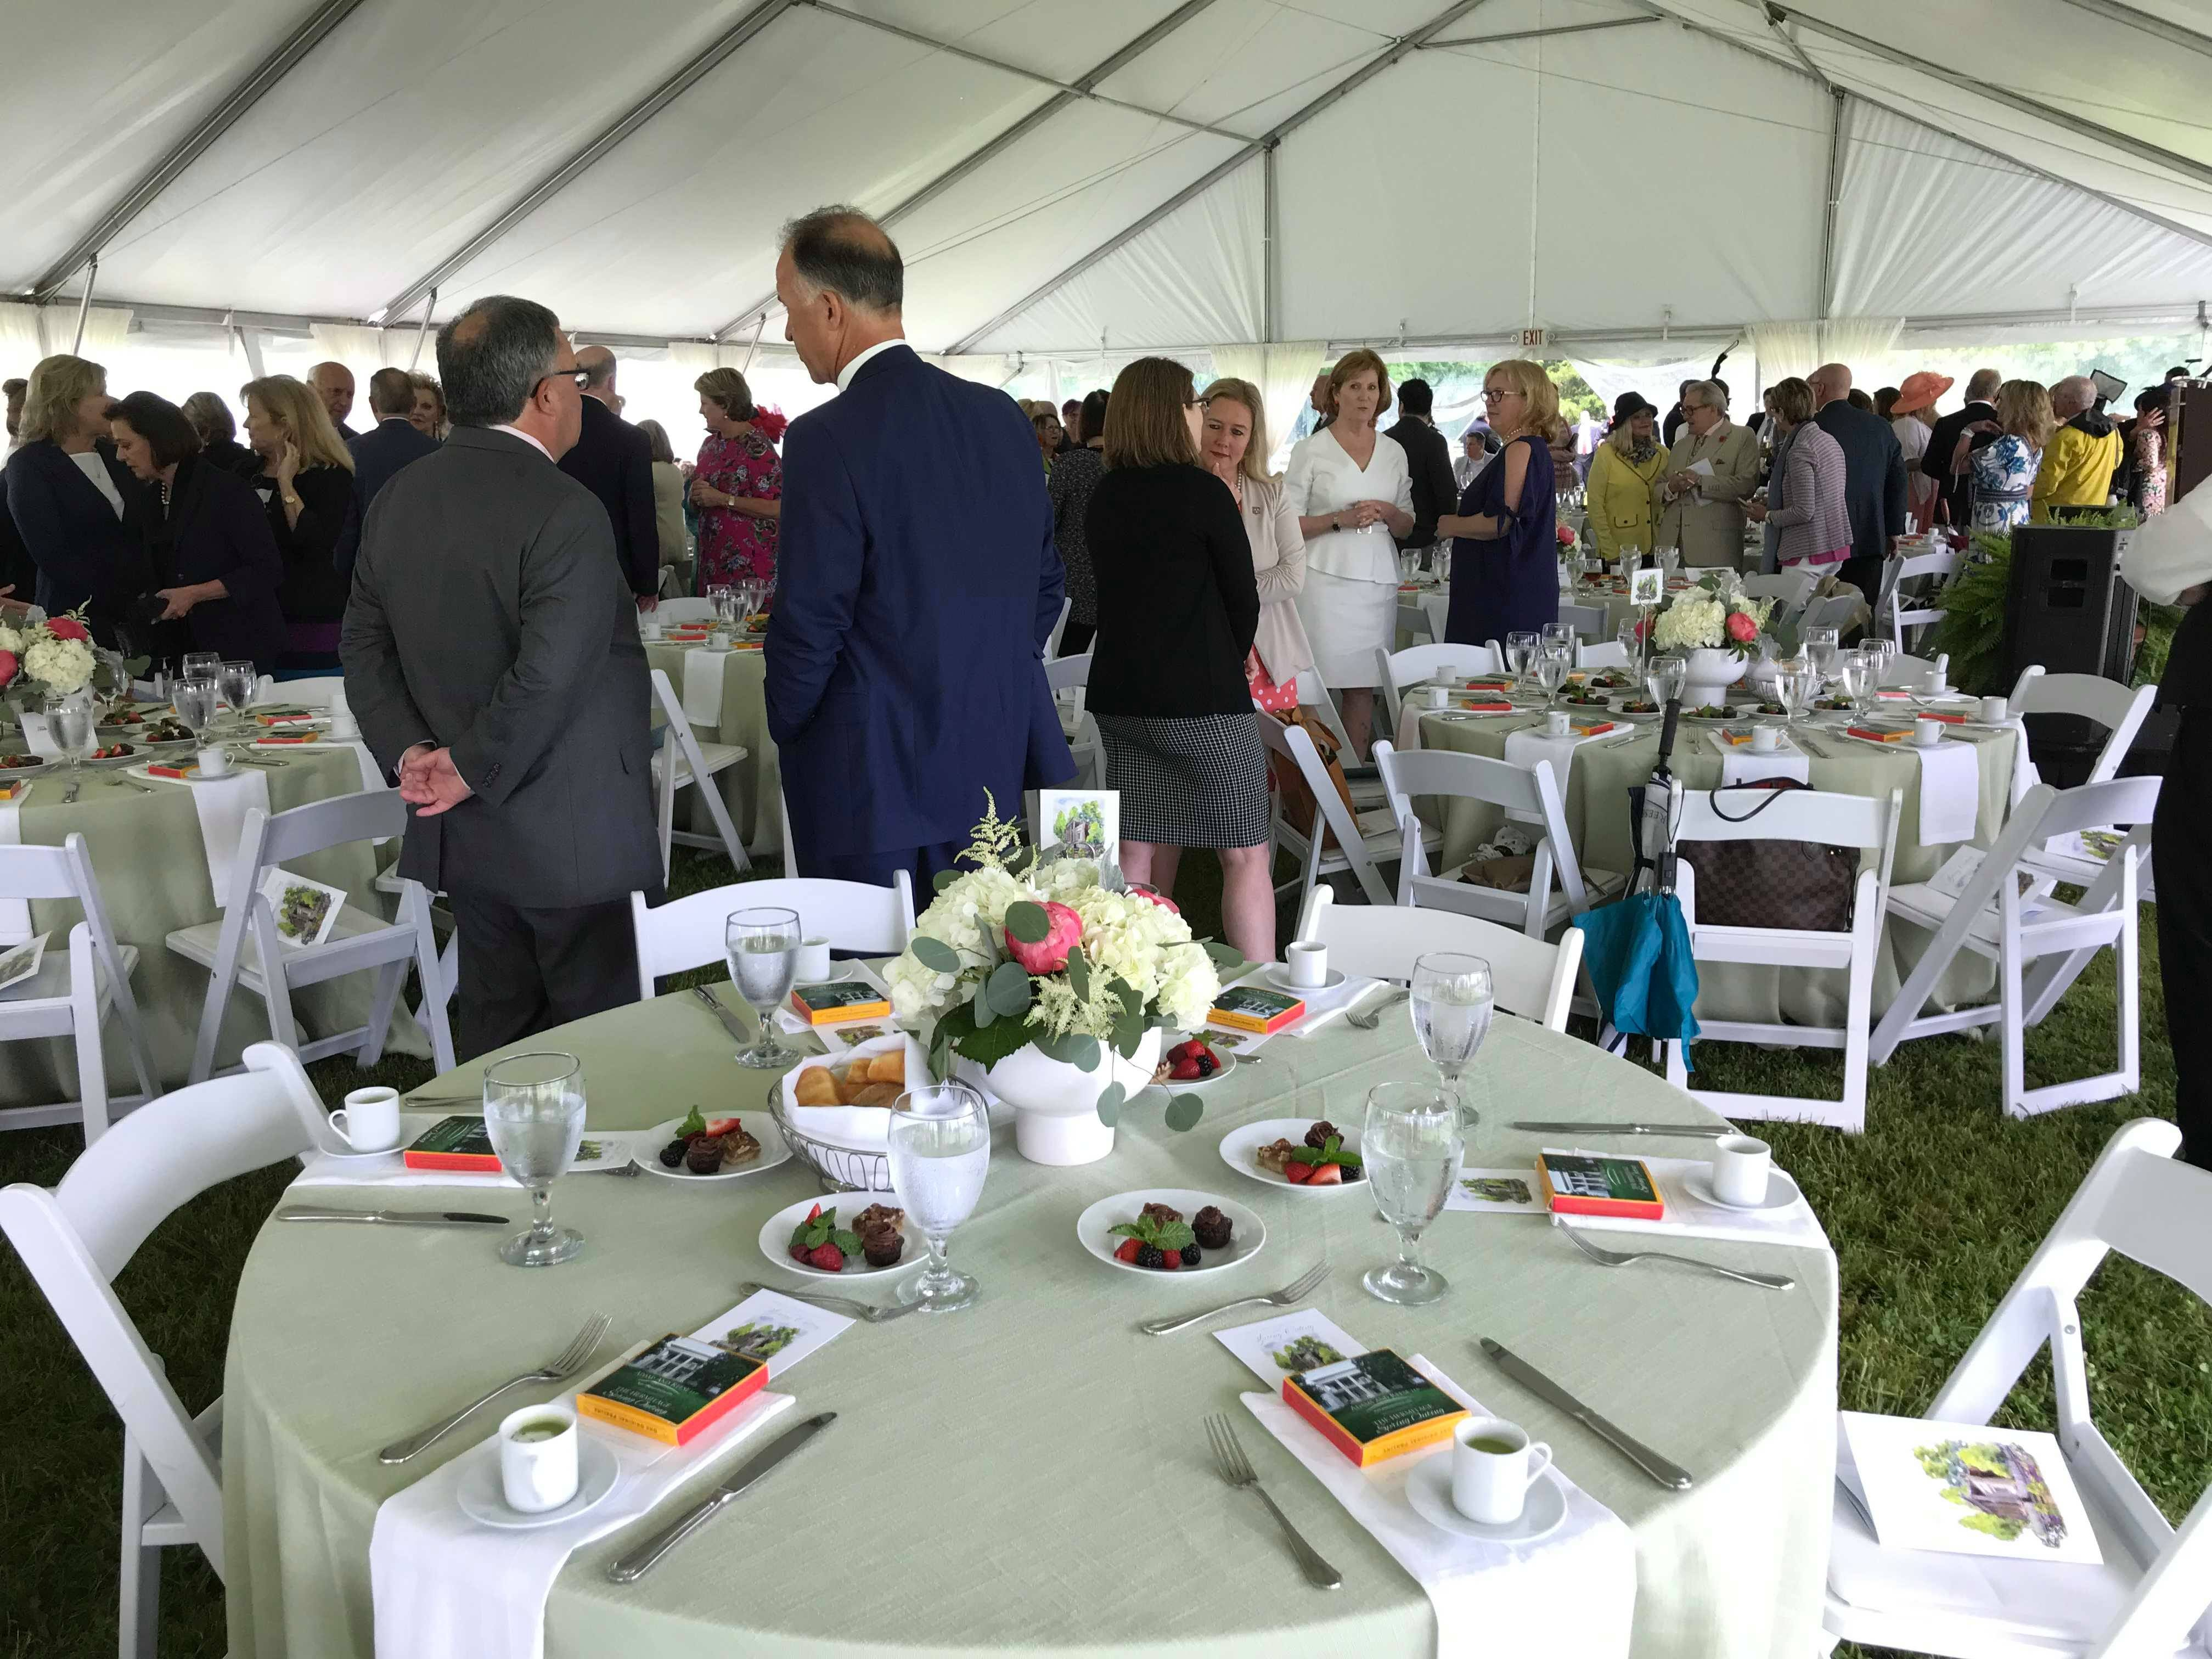 Attendees of the Spring Outing fundraising event mingle Wednesday at The Hermitage.